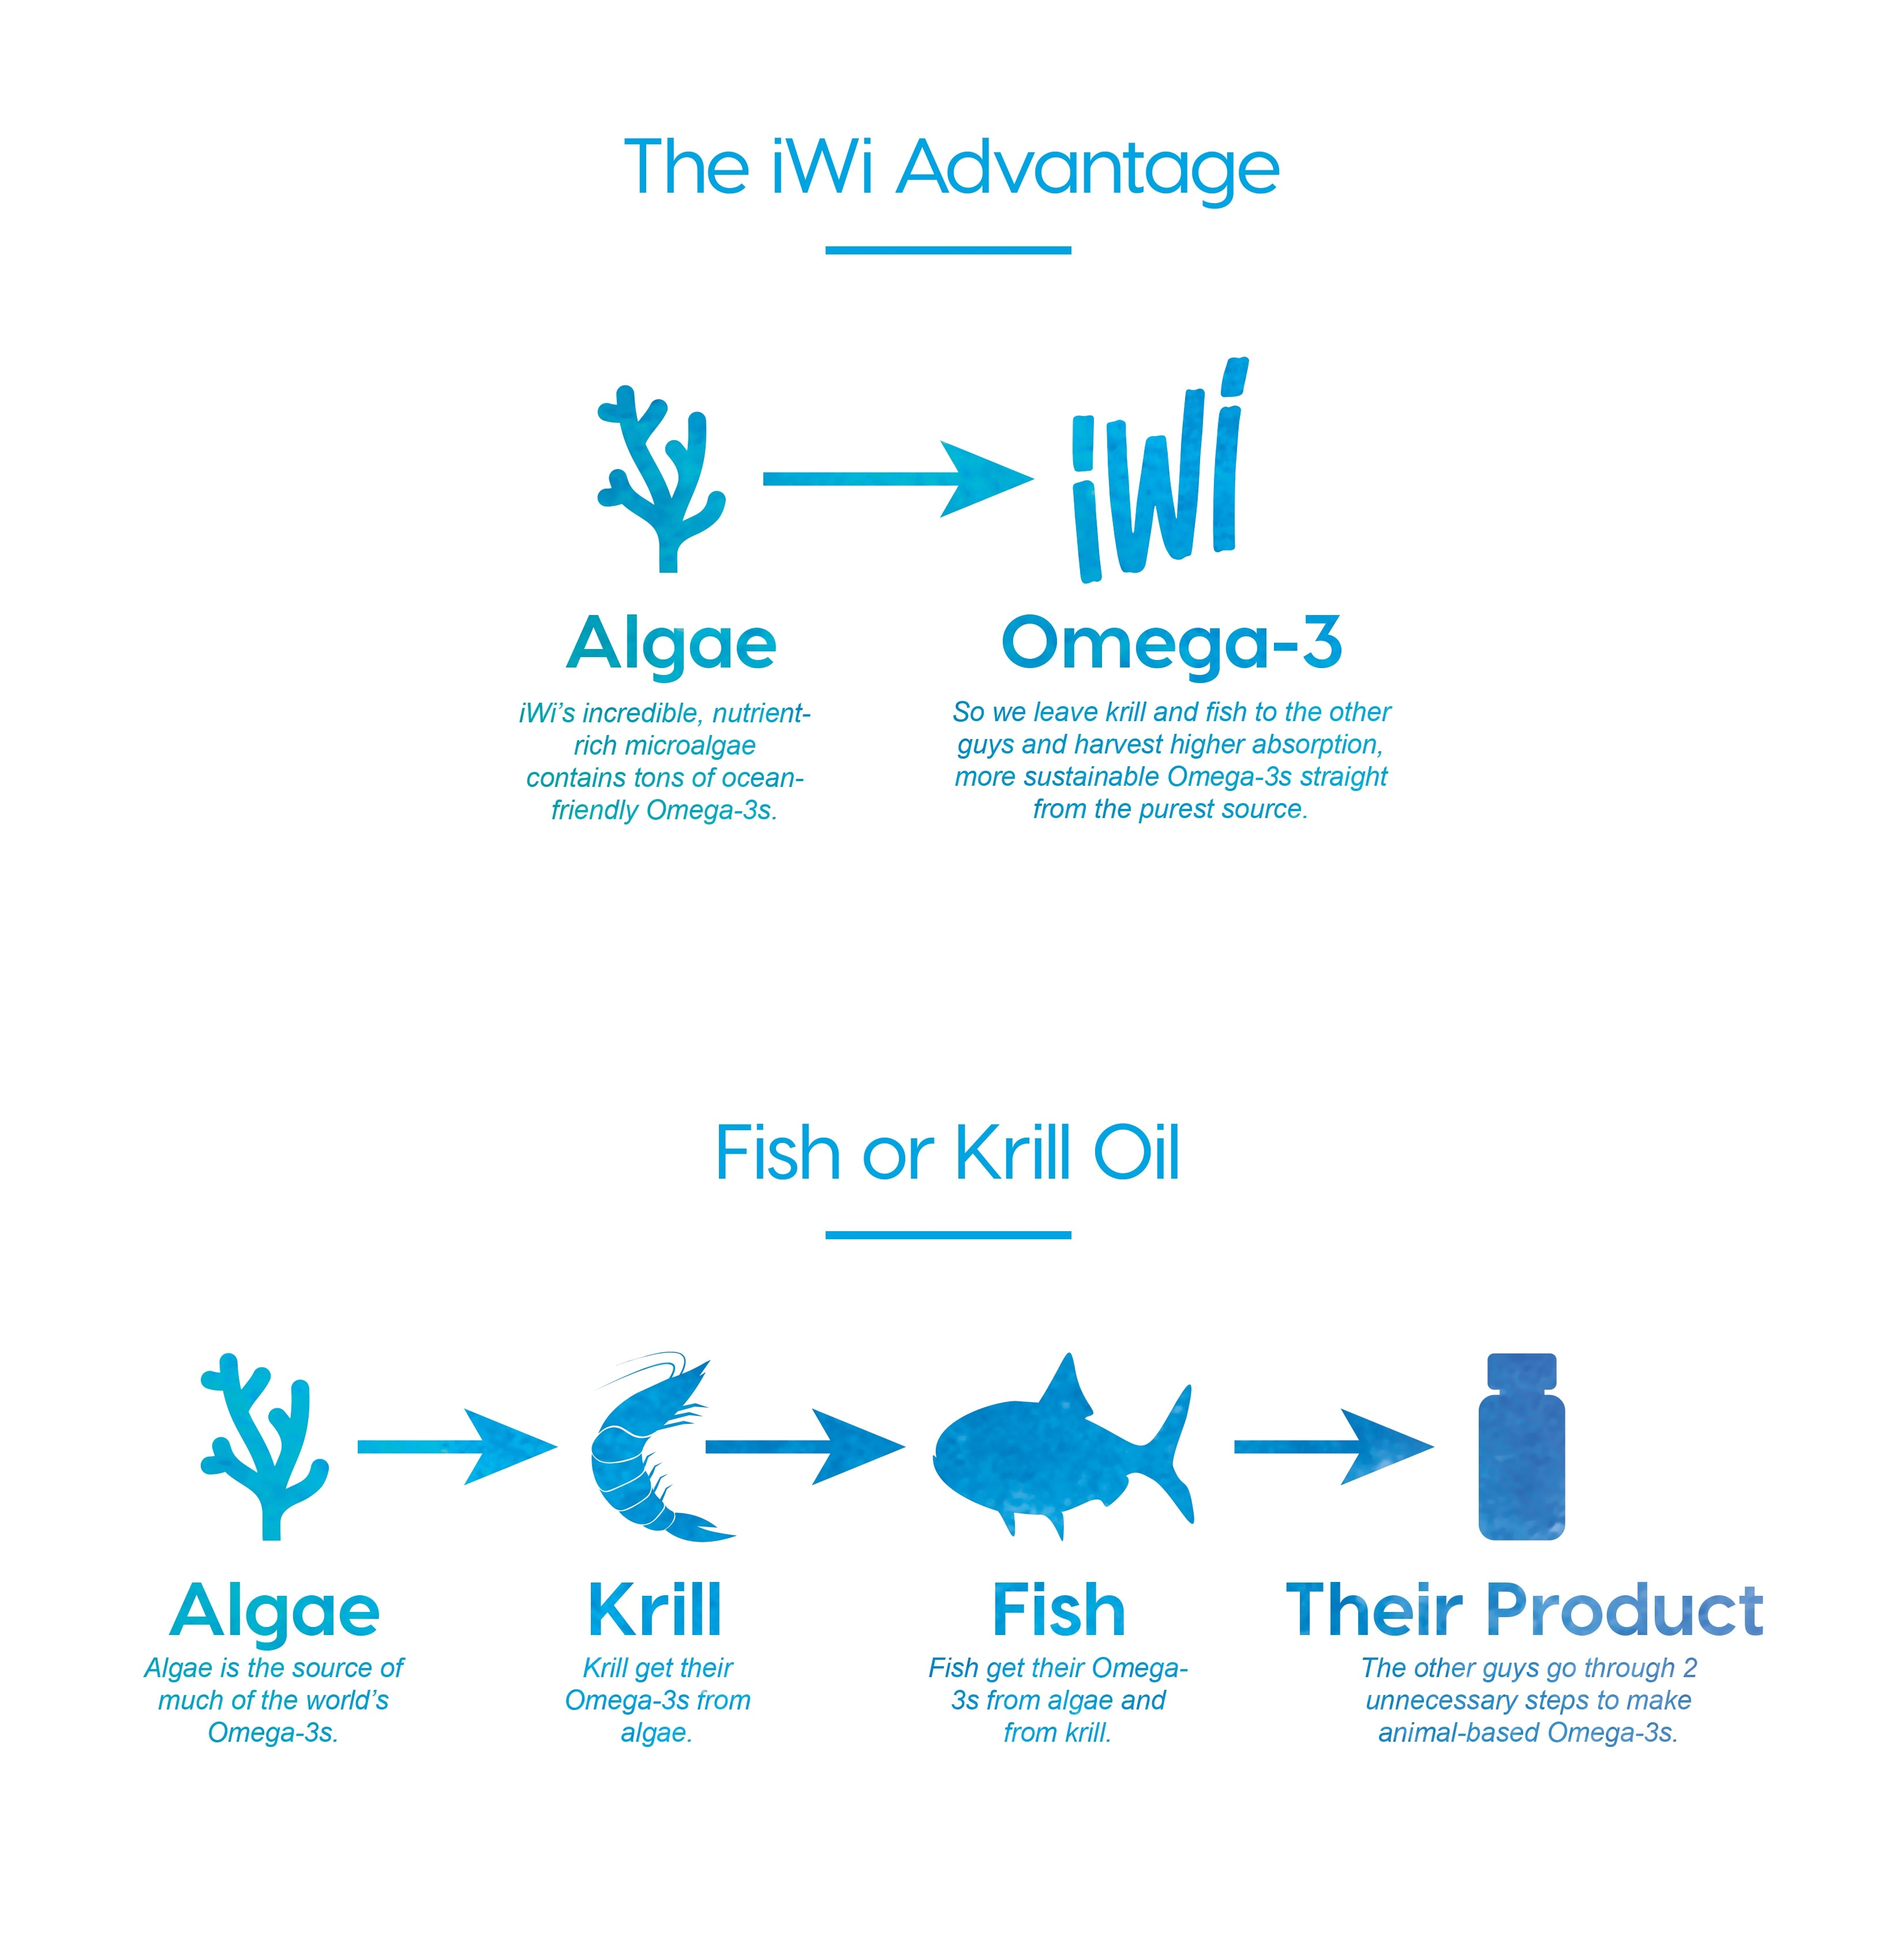 sustainable omega 3